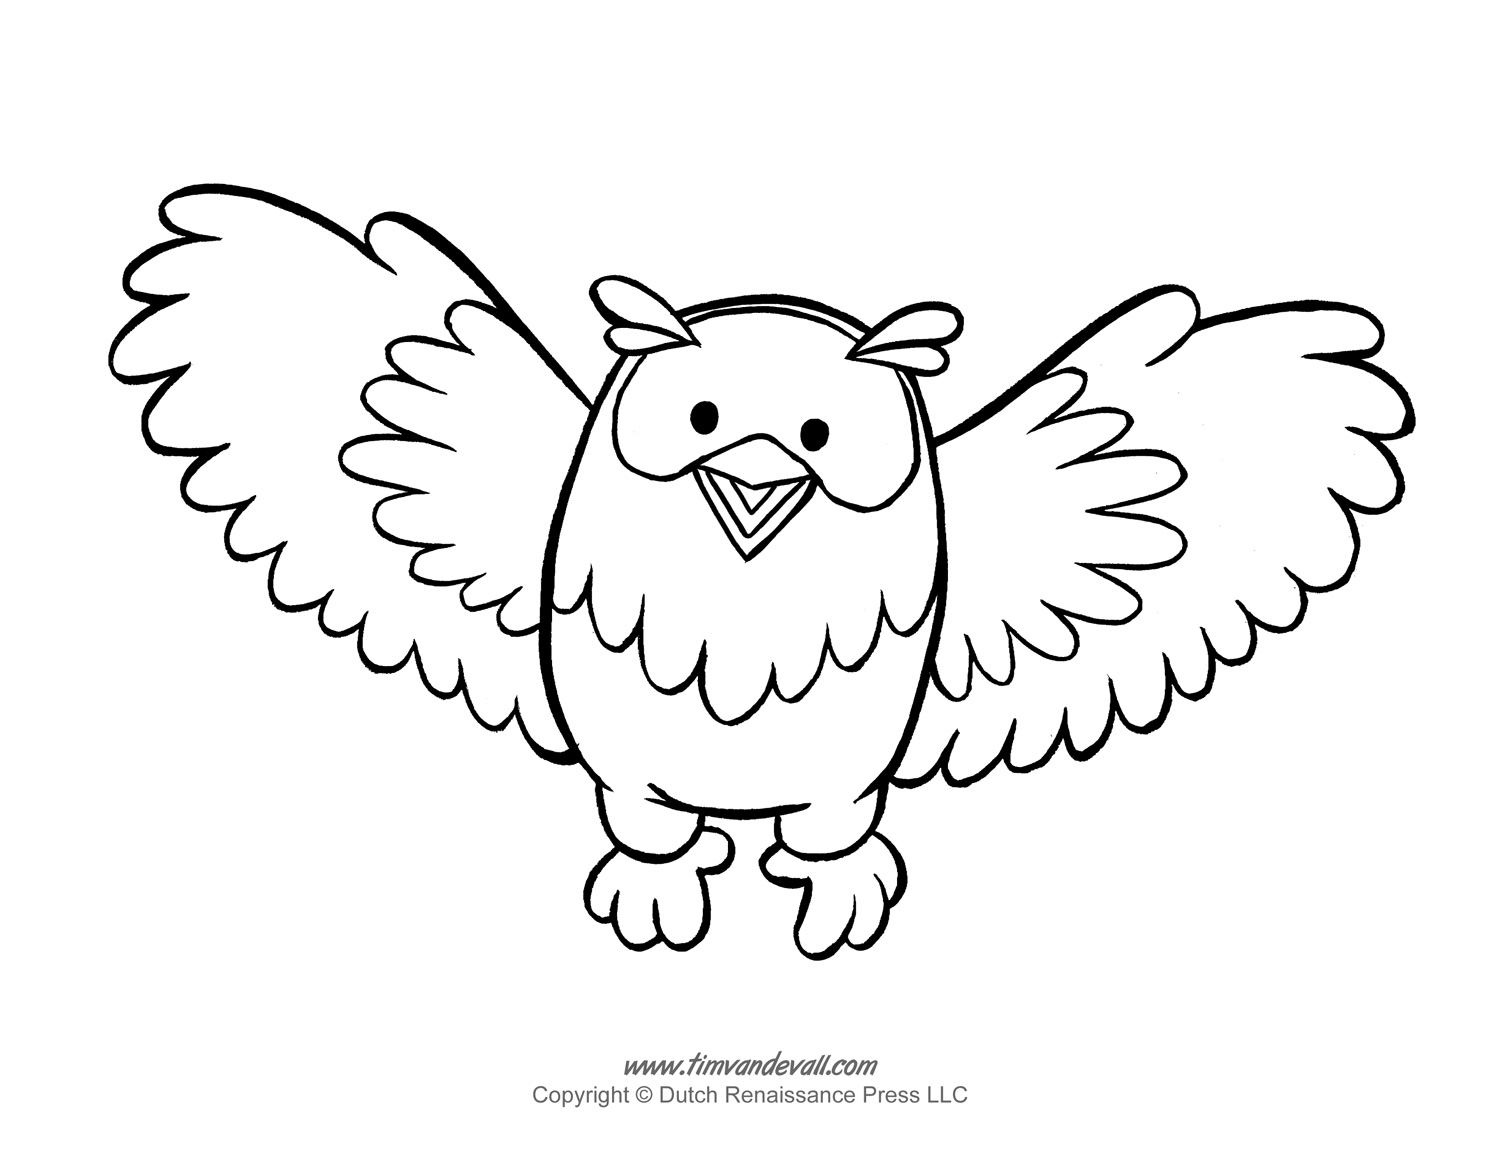 Printable Owl Template, Owl Coloring Pages, and Owl Clipart